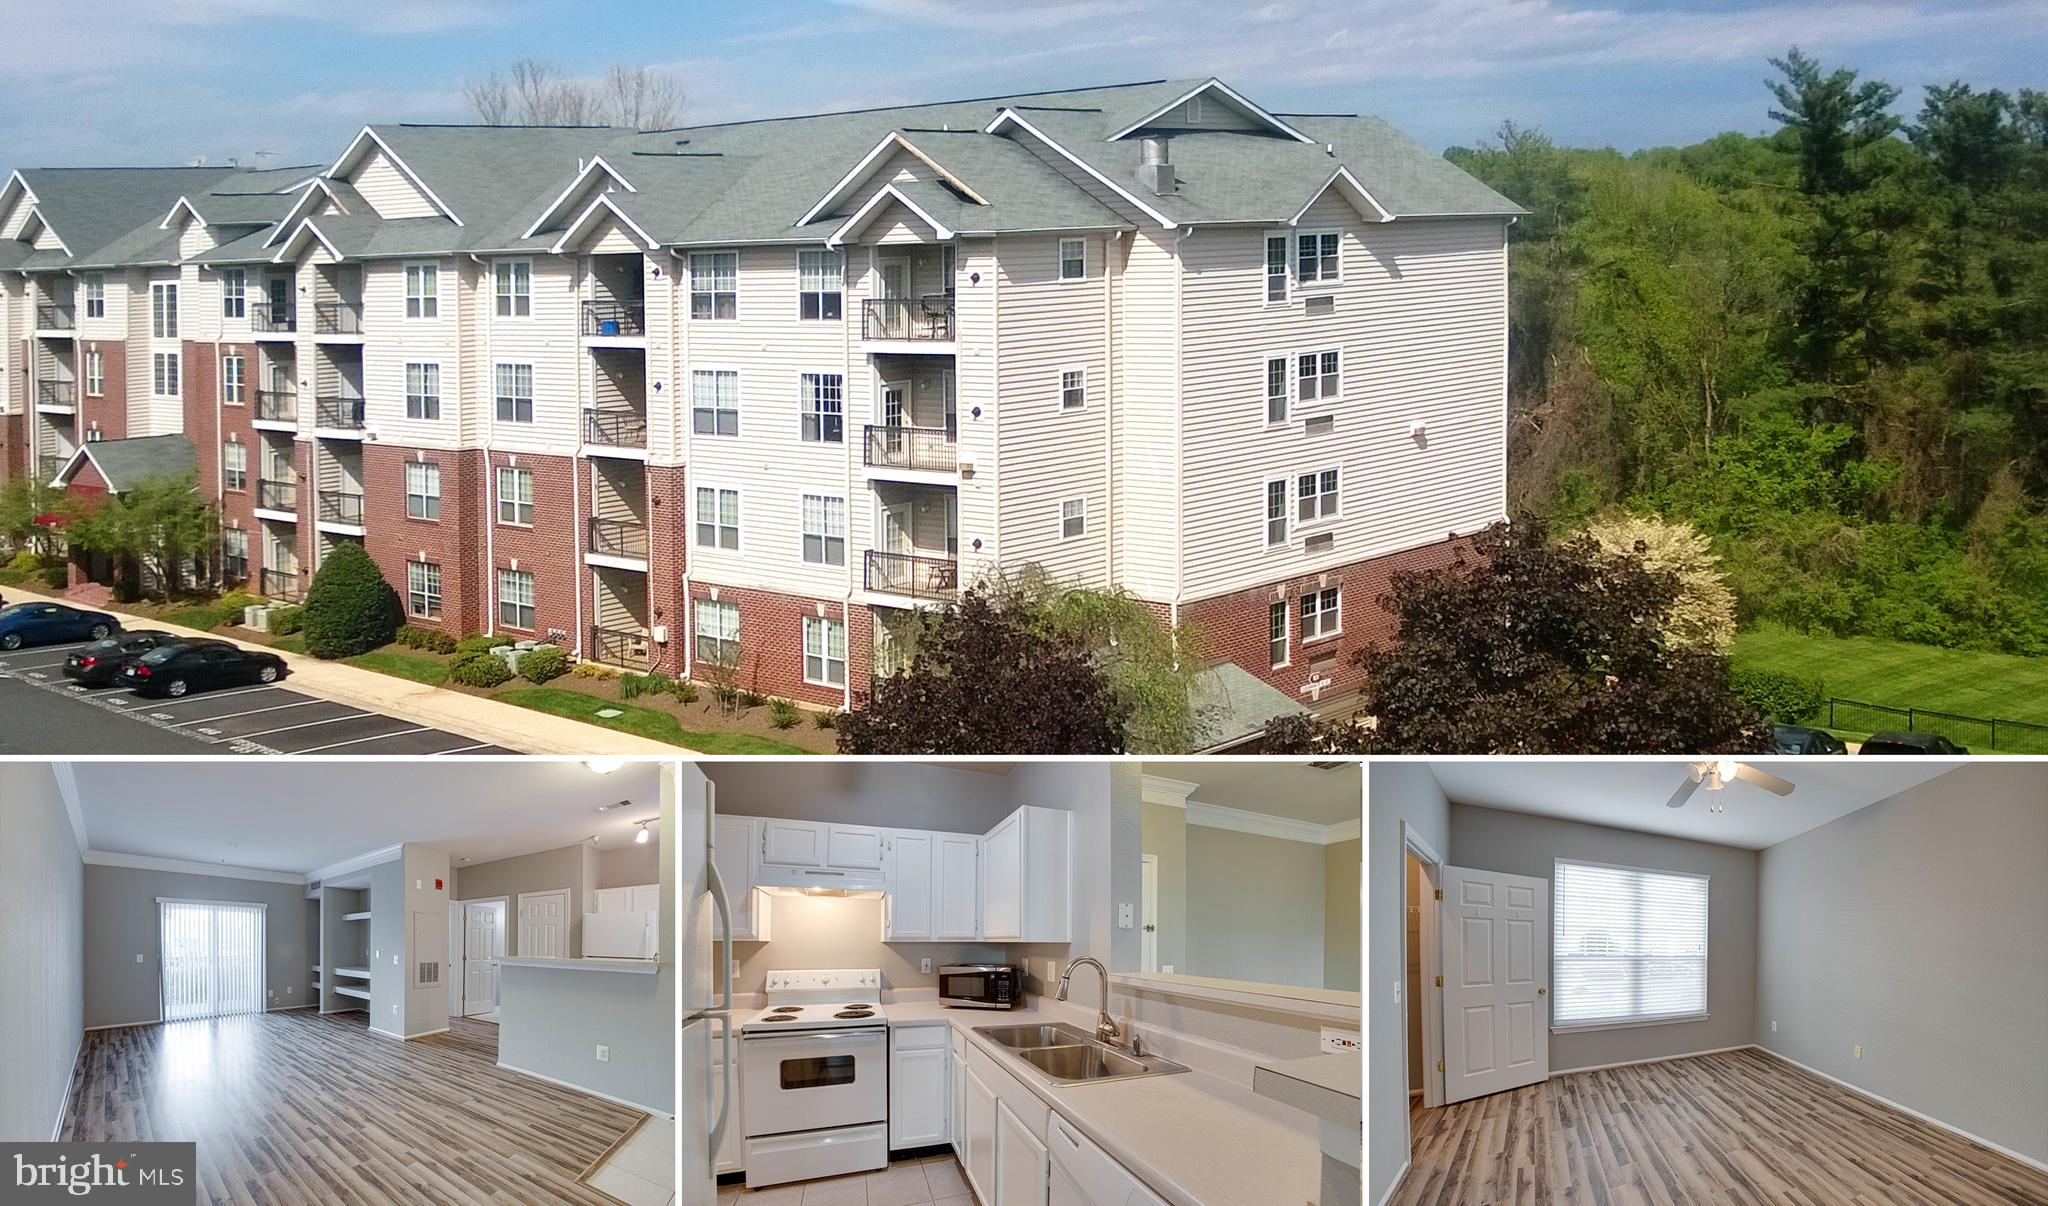 Open Sun 2-4pm (1/31/2021.) Great ground level condo - walk to McLean Silver Line metro + Wegmans across the street opening soon. The unit has laminate floors and newer windows and is in a controlled access building. Larger 735 sqft Danielle model. 1 reserved parking spot + 2 guest tags. The Gates of McLean is a gated community with great amenities like an outdoor swimming pool, gym, clubhouse, sports court, grill area and walking paths. Minutes to everything in Tysons and minutes from toll road. Make sure to check out the Matterport 3D tour.